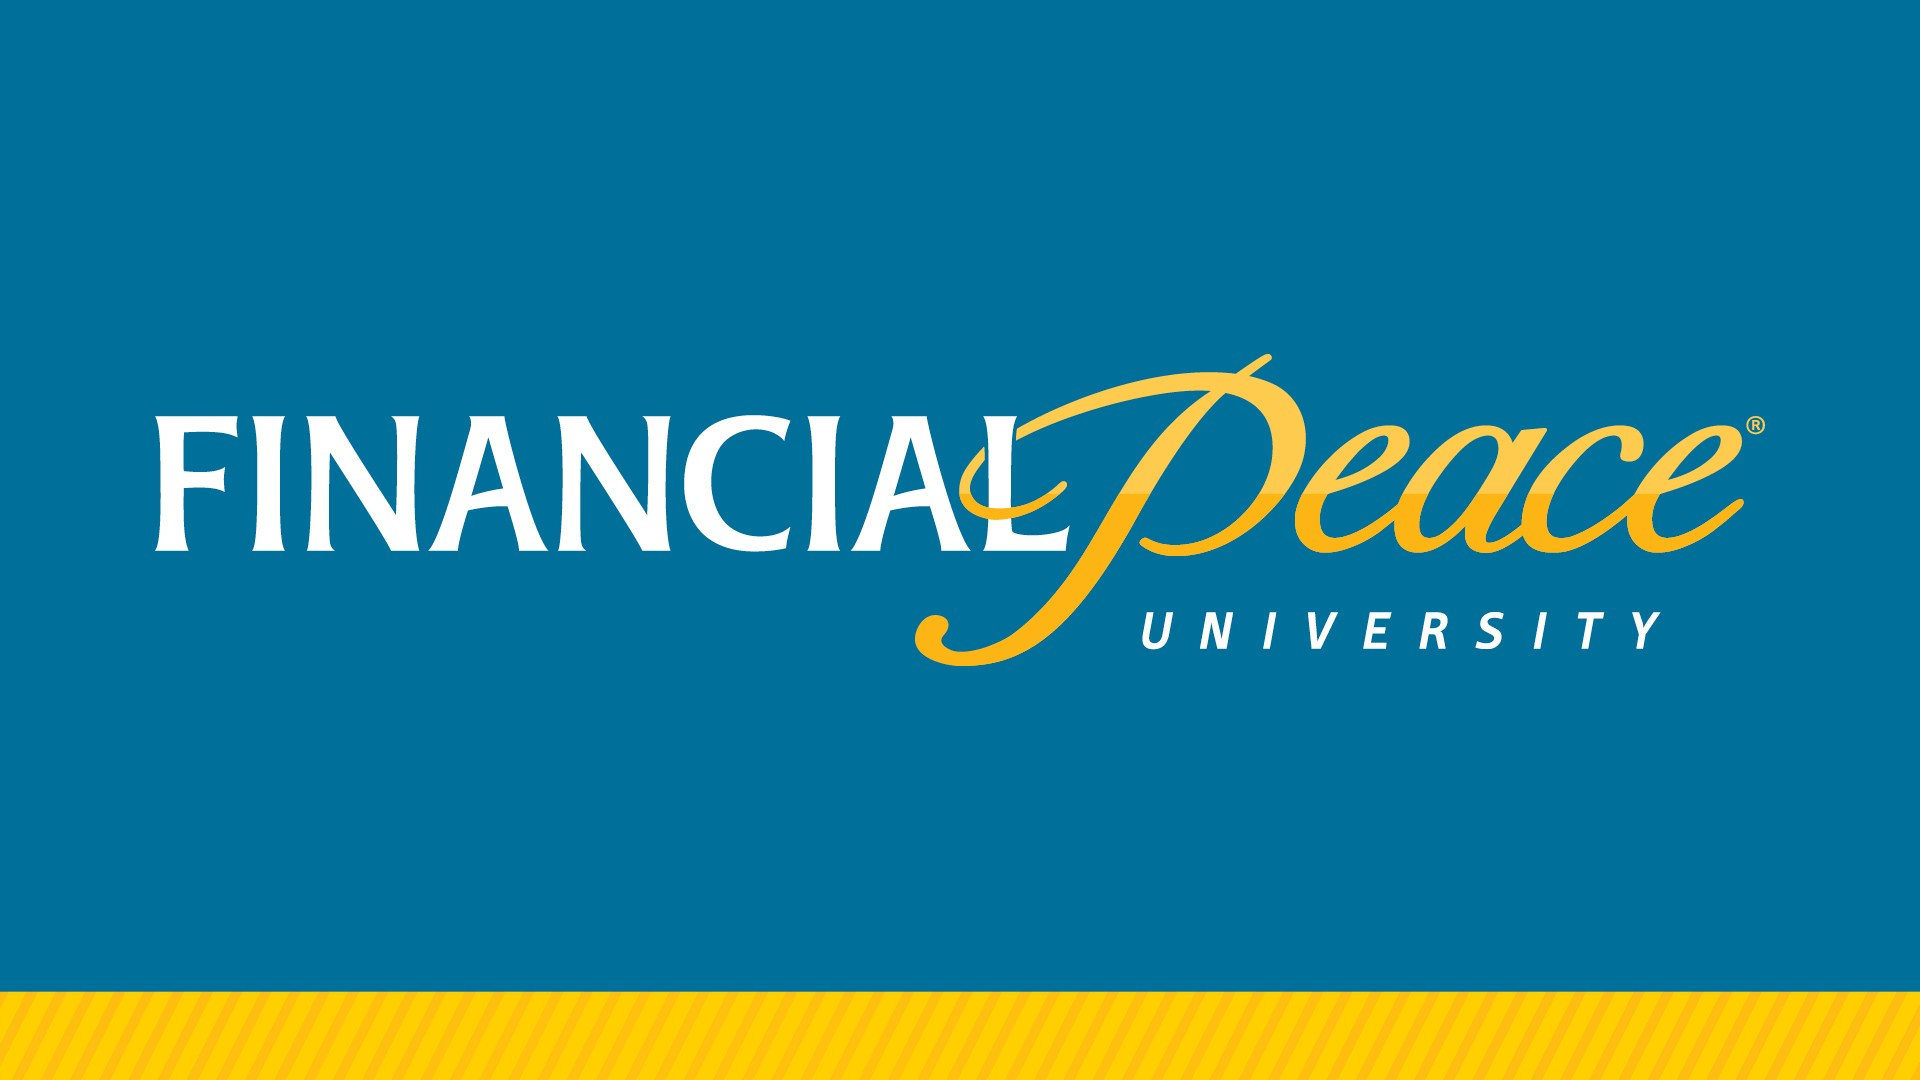 financial-peace-slide-large-logo.jpg